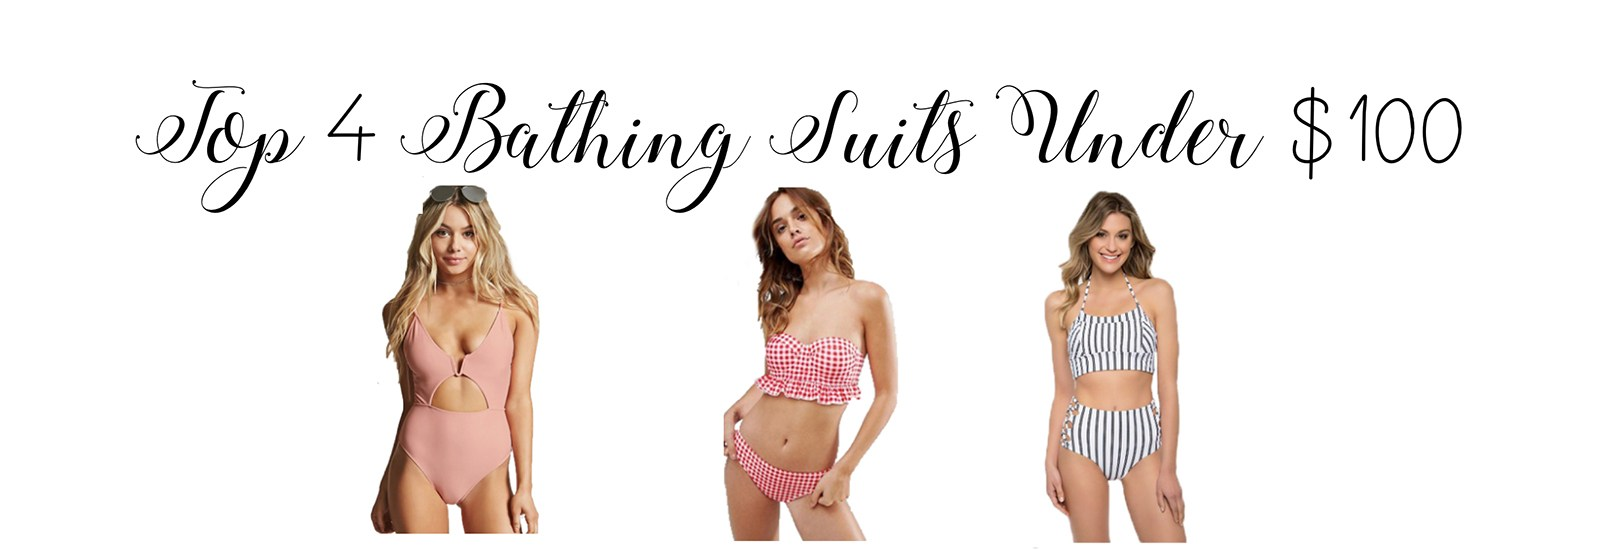 Top 4 Bathing Suits Under $100